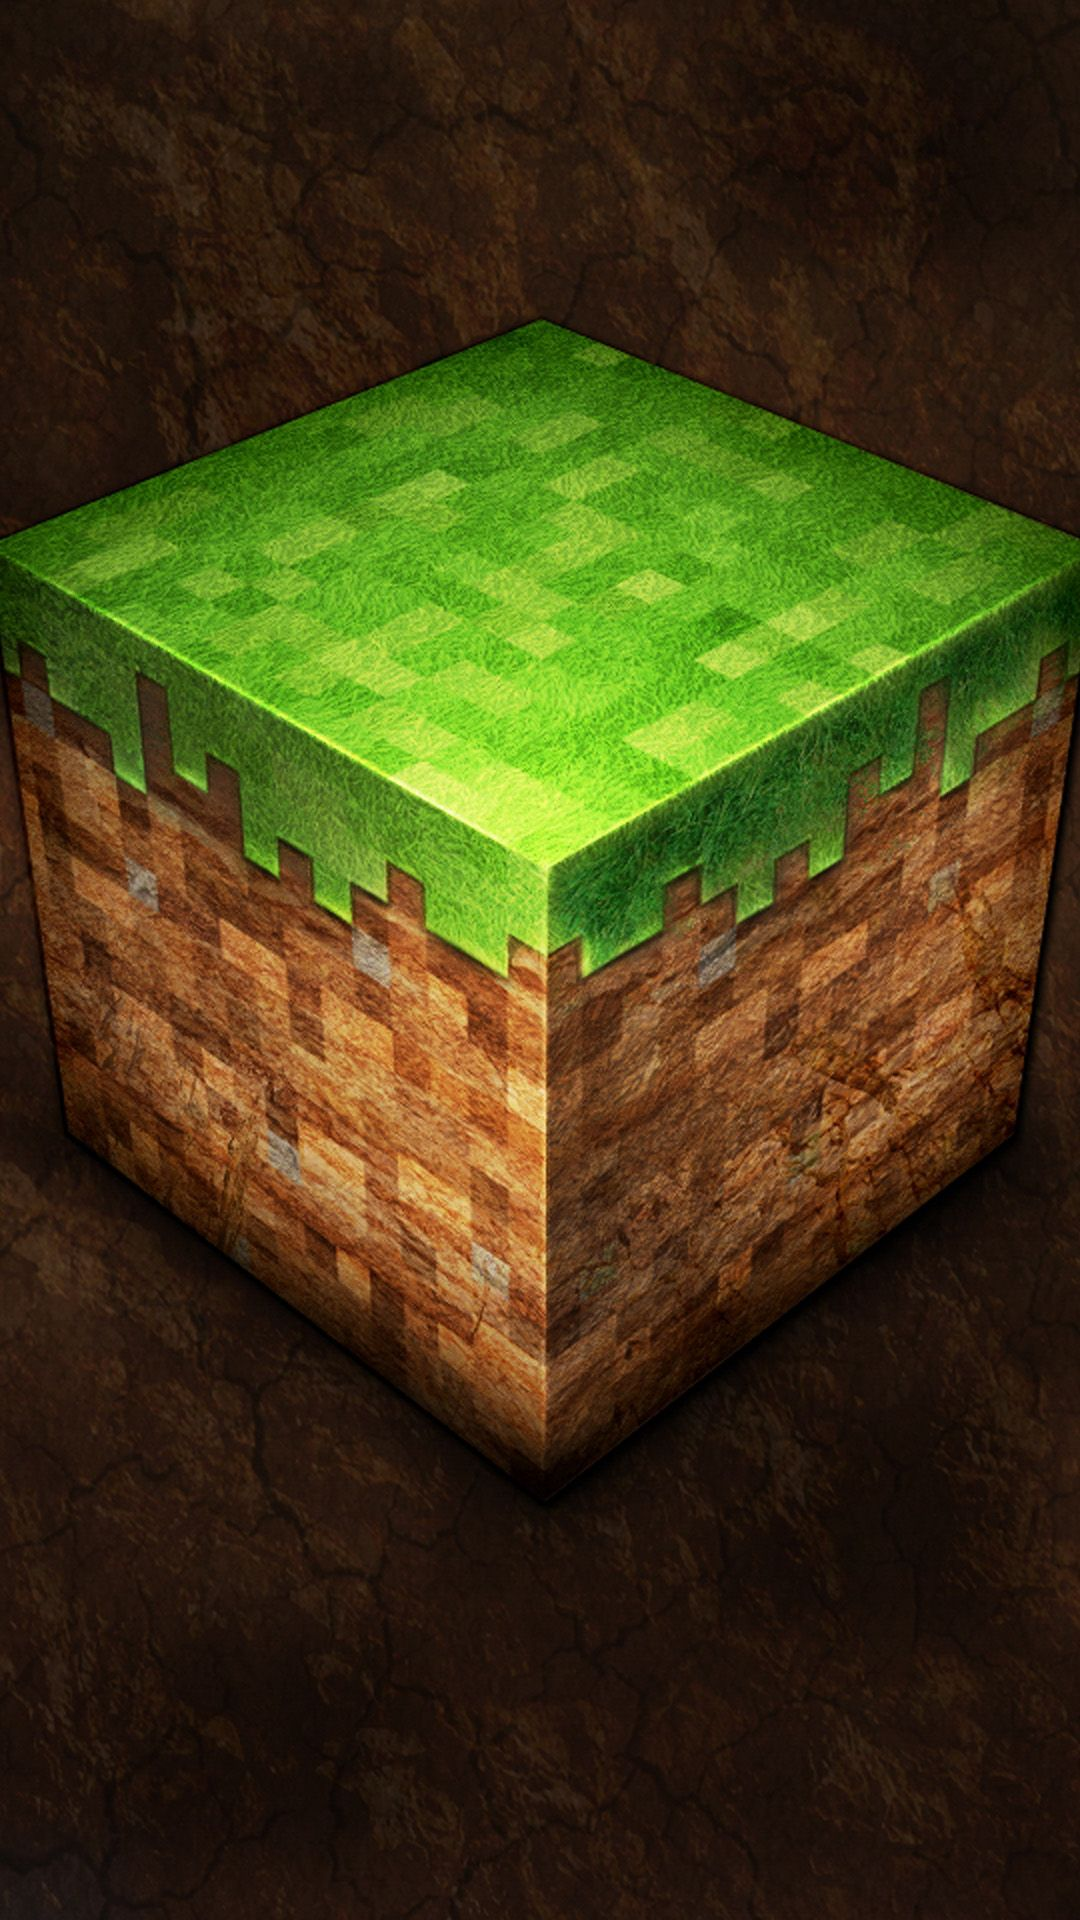 Best Wallpaper Minecraft Iphone - c9a46fe574565fbd9412ab84155e0b51  Photograph_587574.jpg